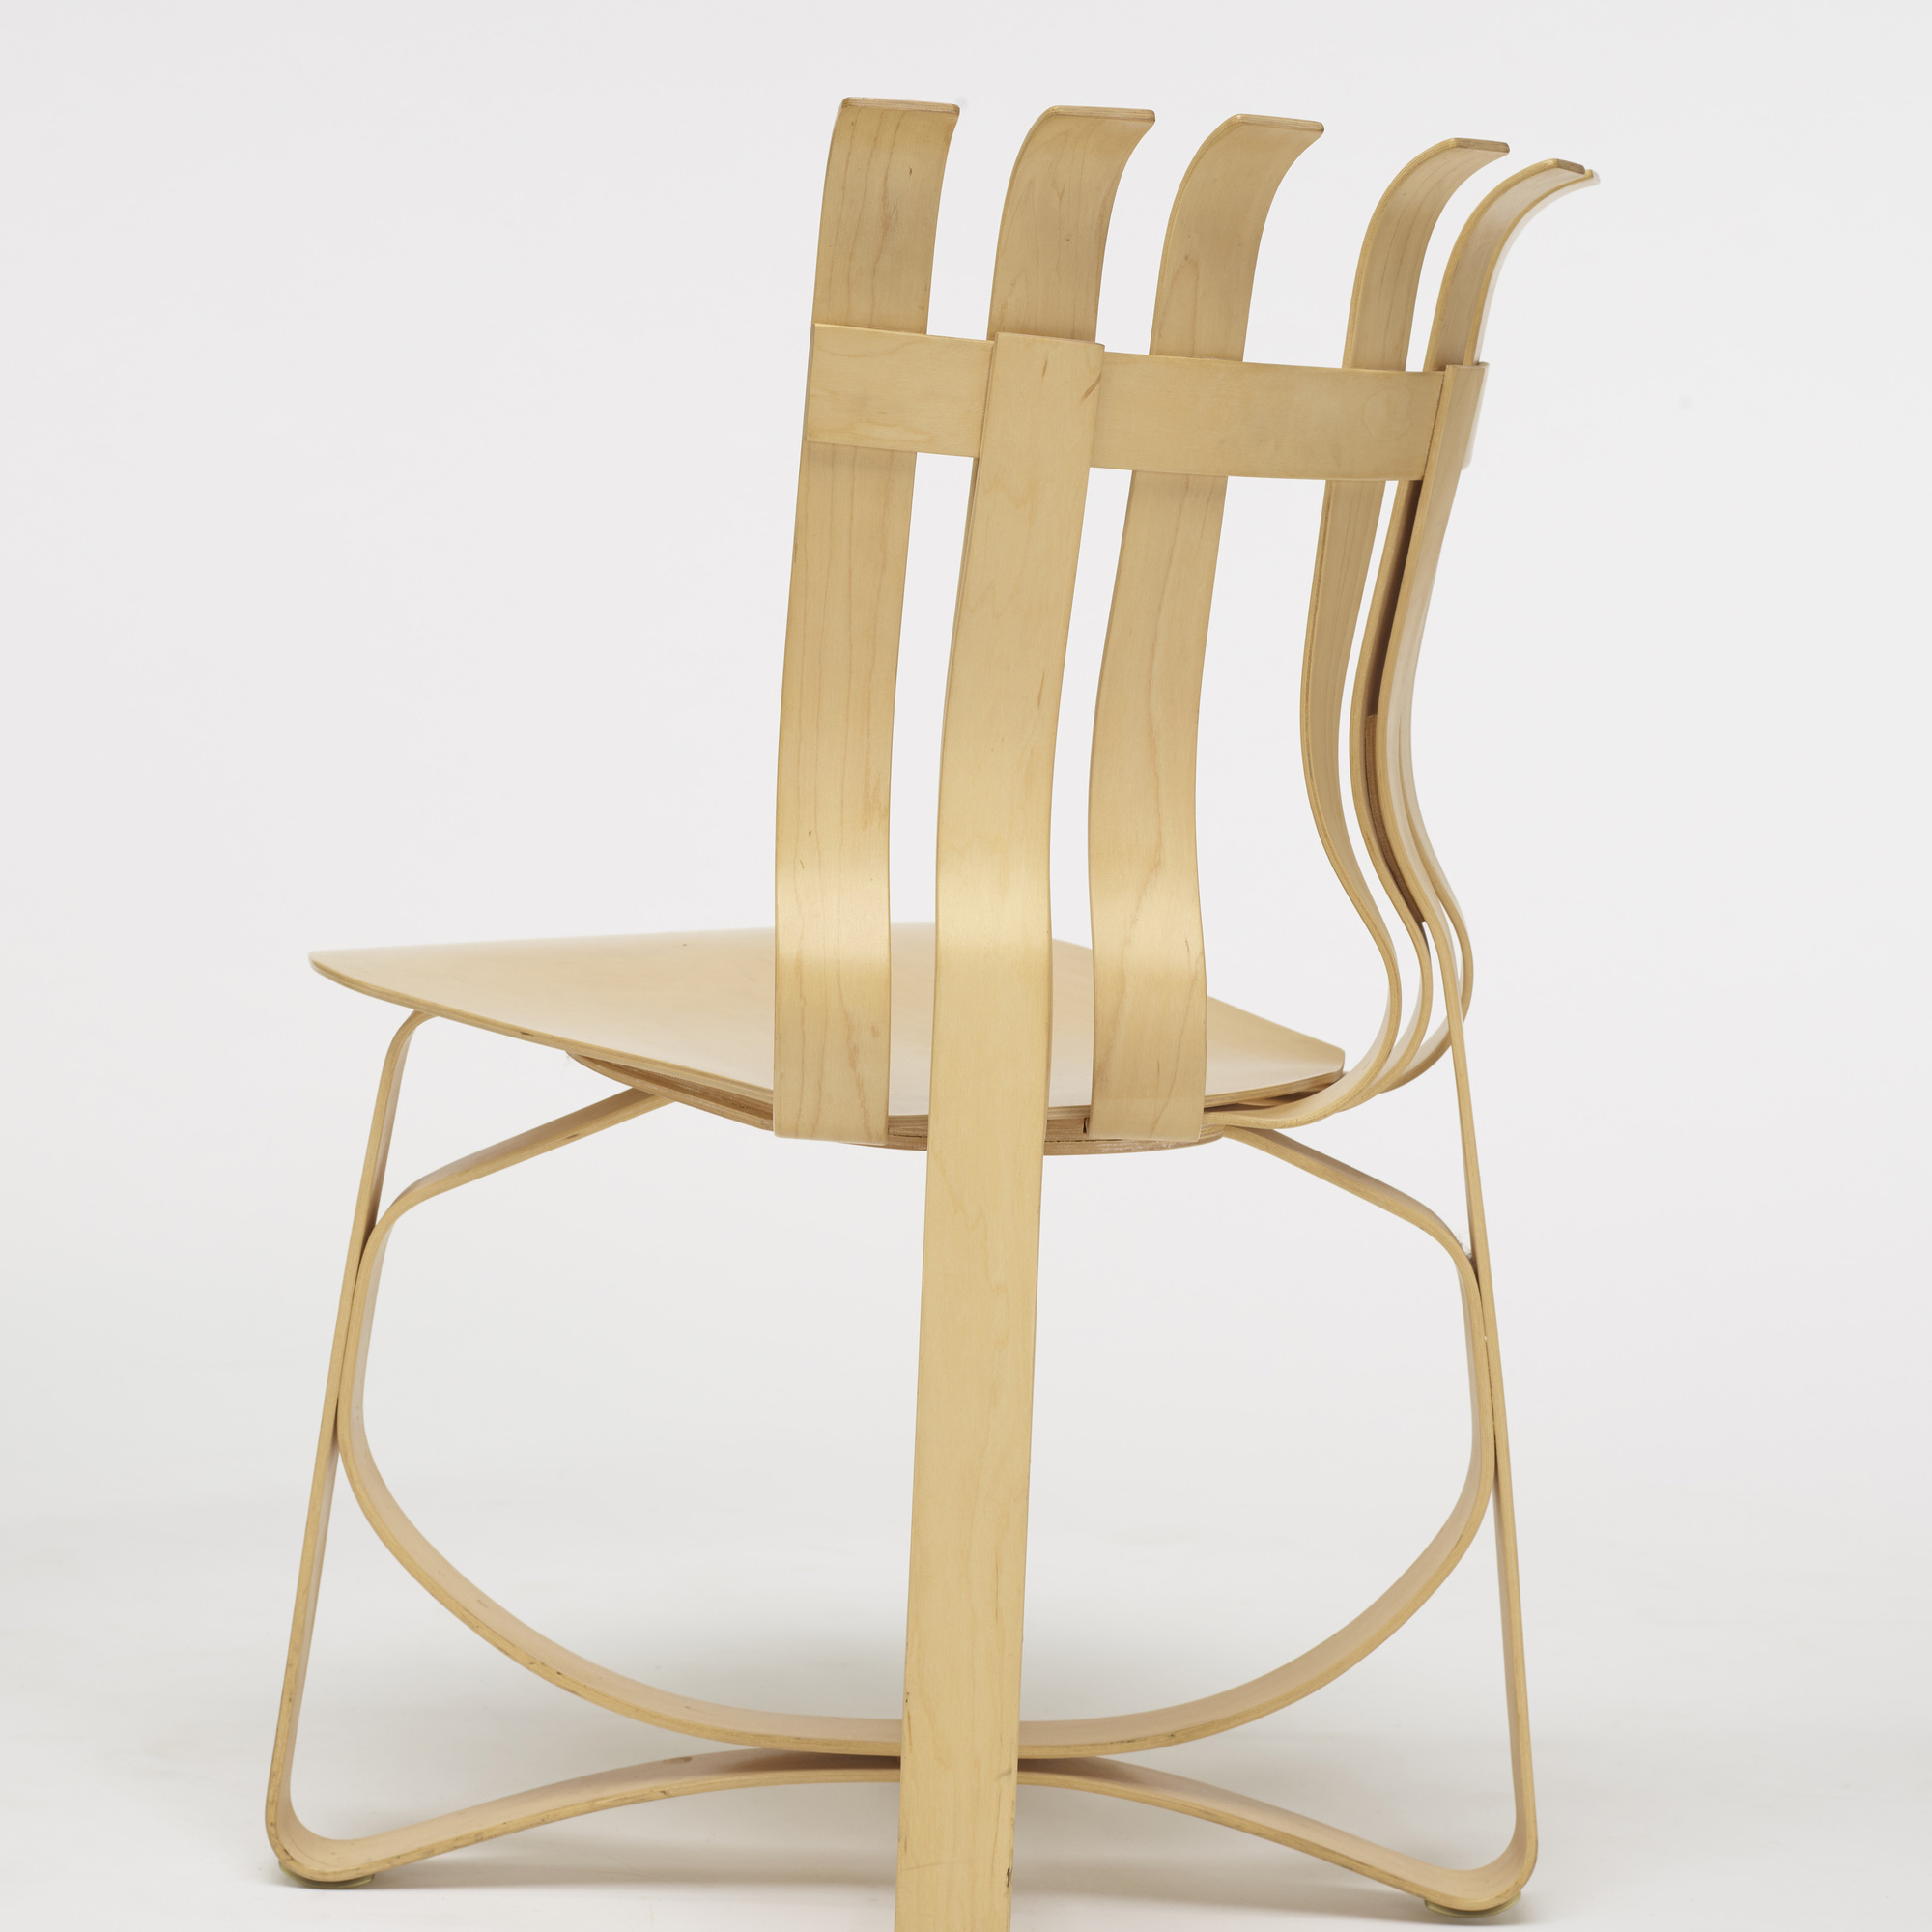 304: Frank Gehry / Power Play dining set (3 of 3)